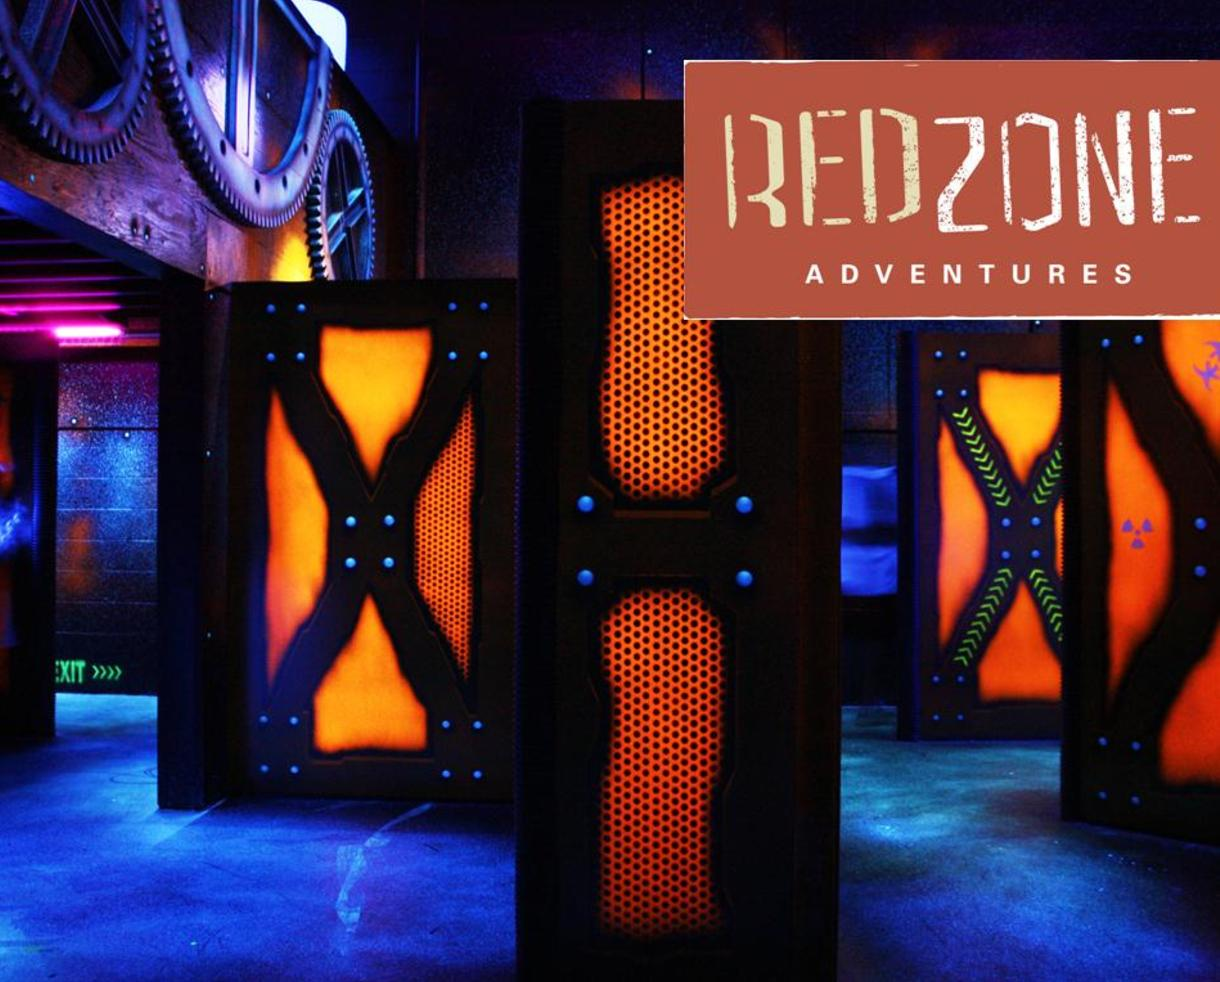 $35 for Red Zone Adventures Family Night Out - Including Attractions and Dinner + Special Birthday Package - Timonium (Up to 53% Off - $74 Value)